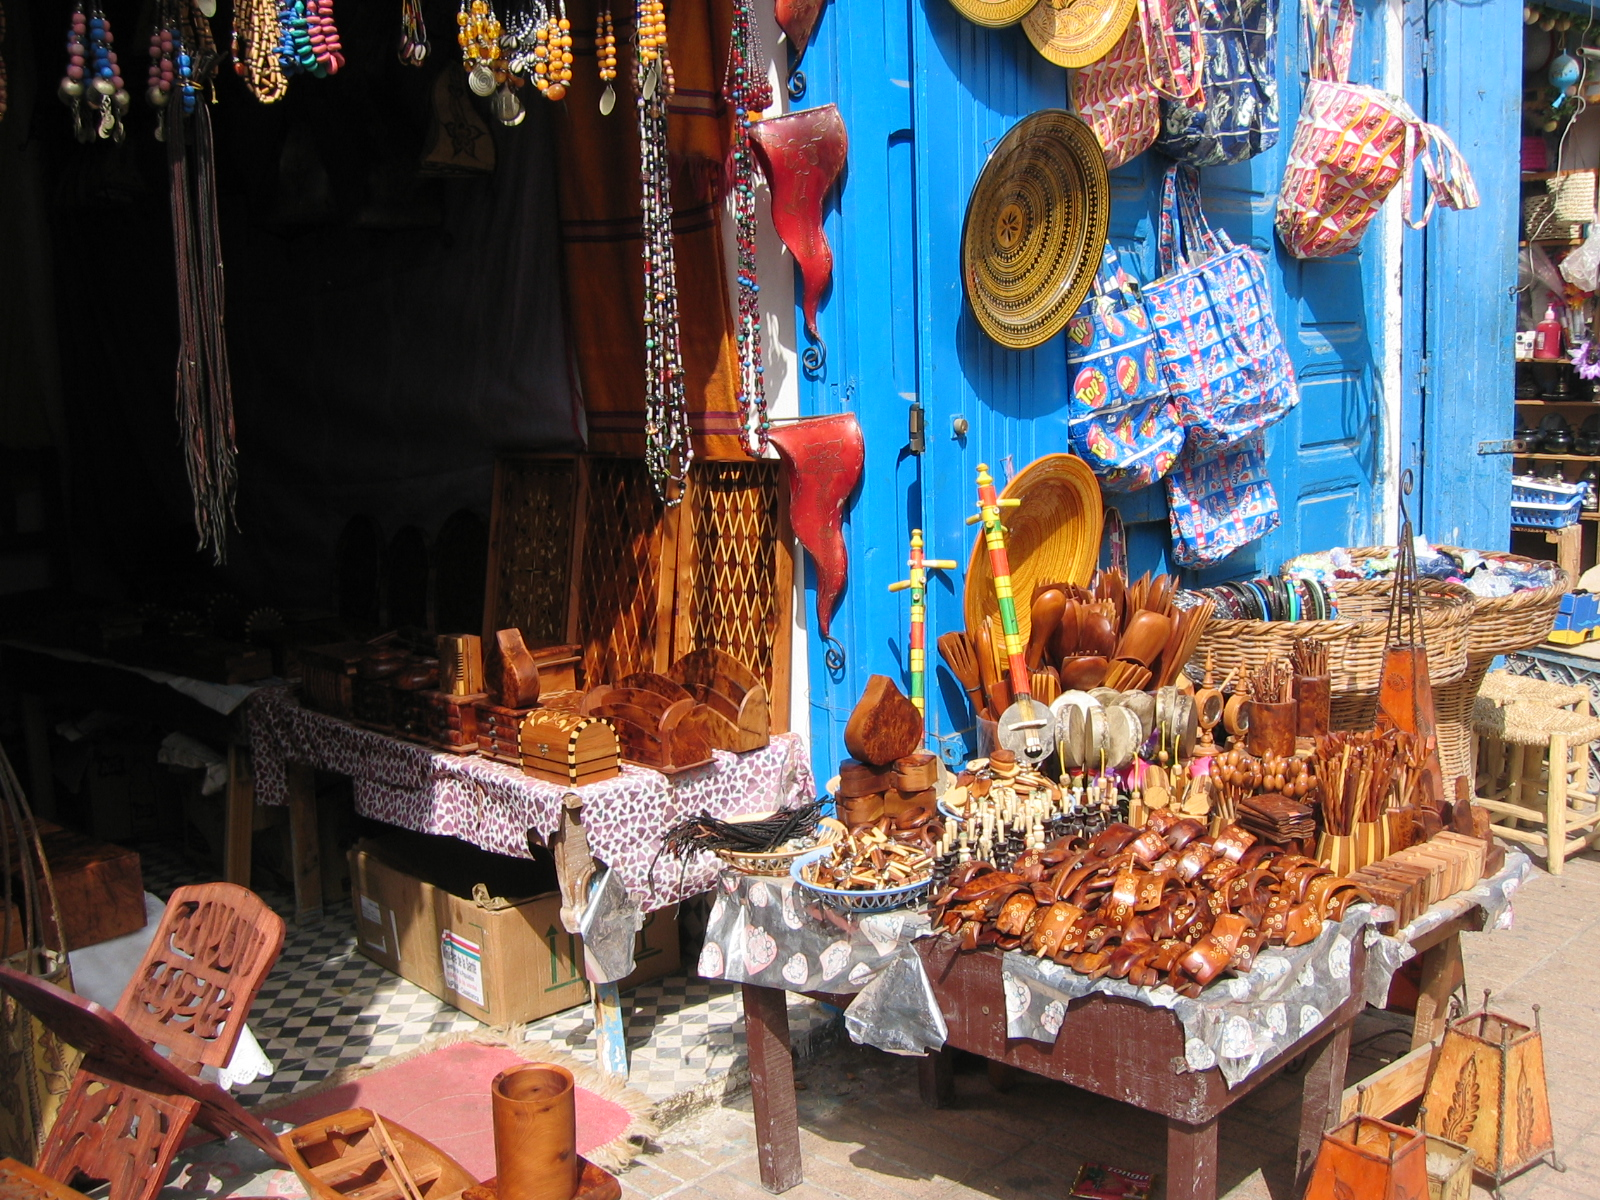 Souvenirs,_local_and_imported_(2902038836).jpg